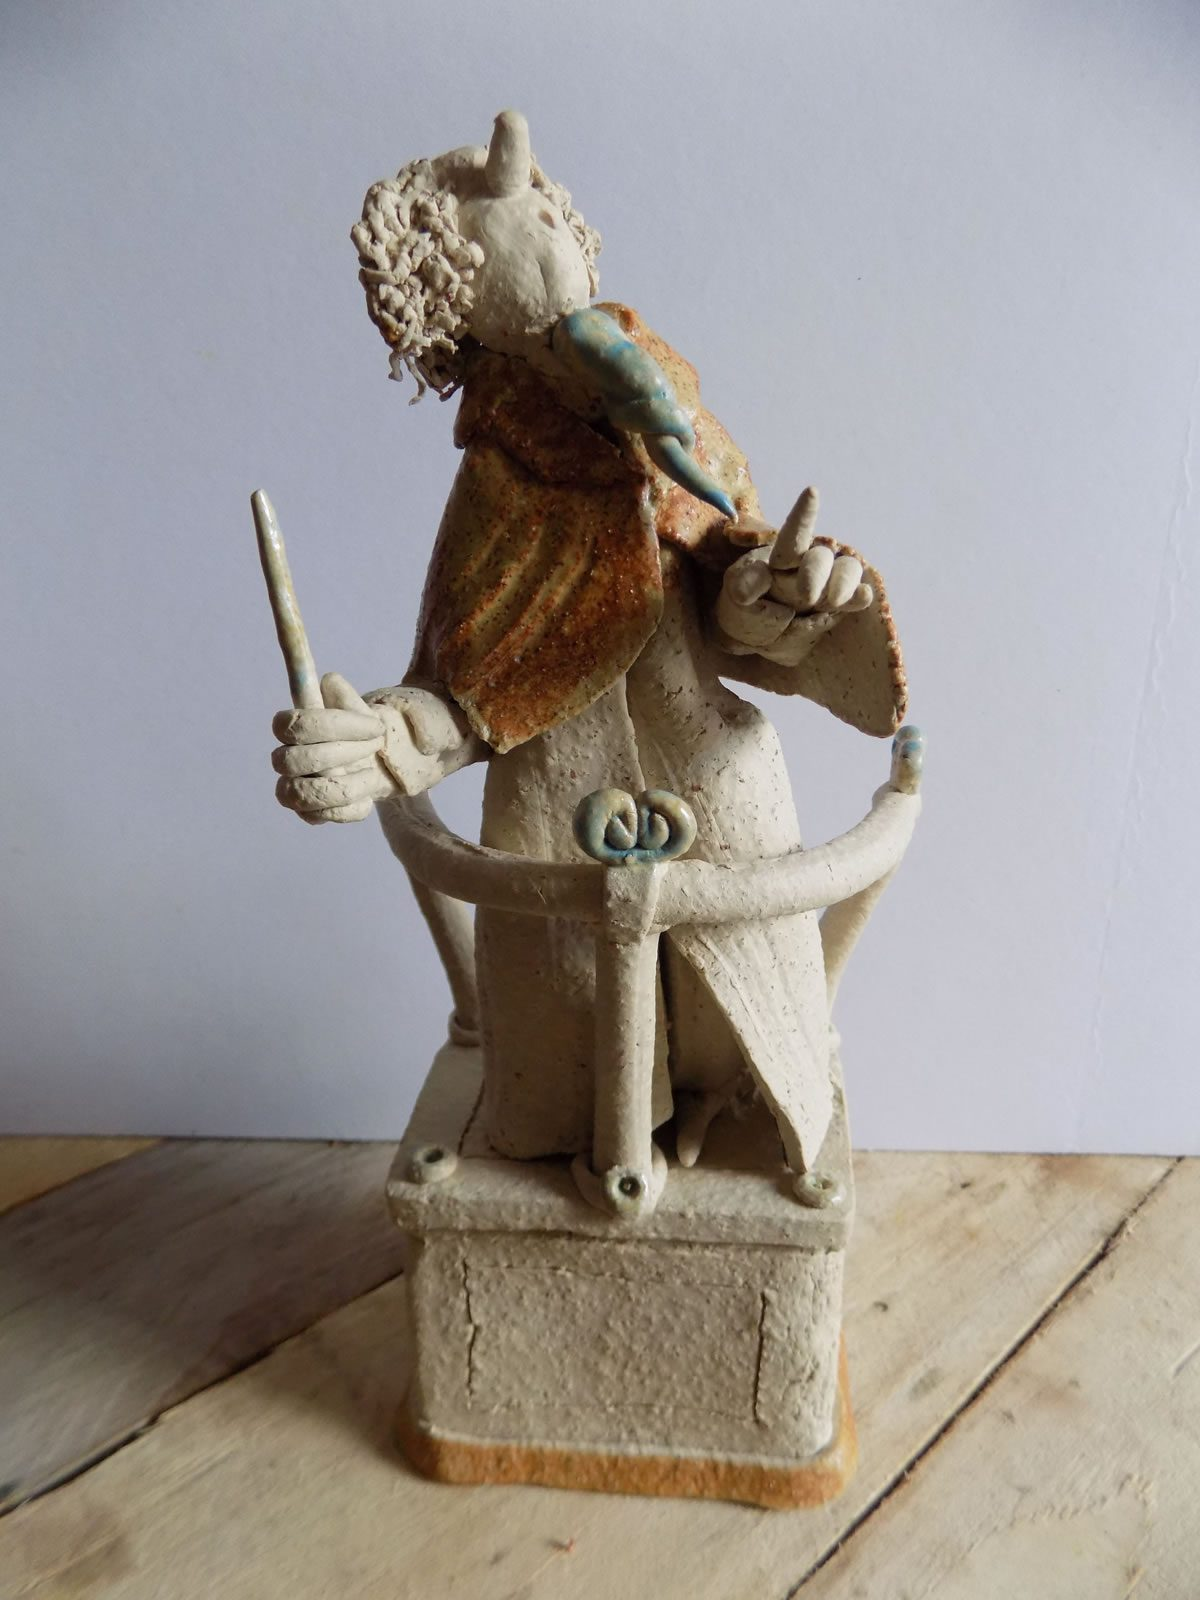 Stoneware figure sculpture by East Yorkshire ceramicist Stewart Taylor